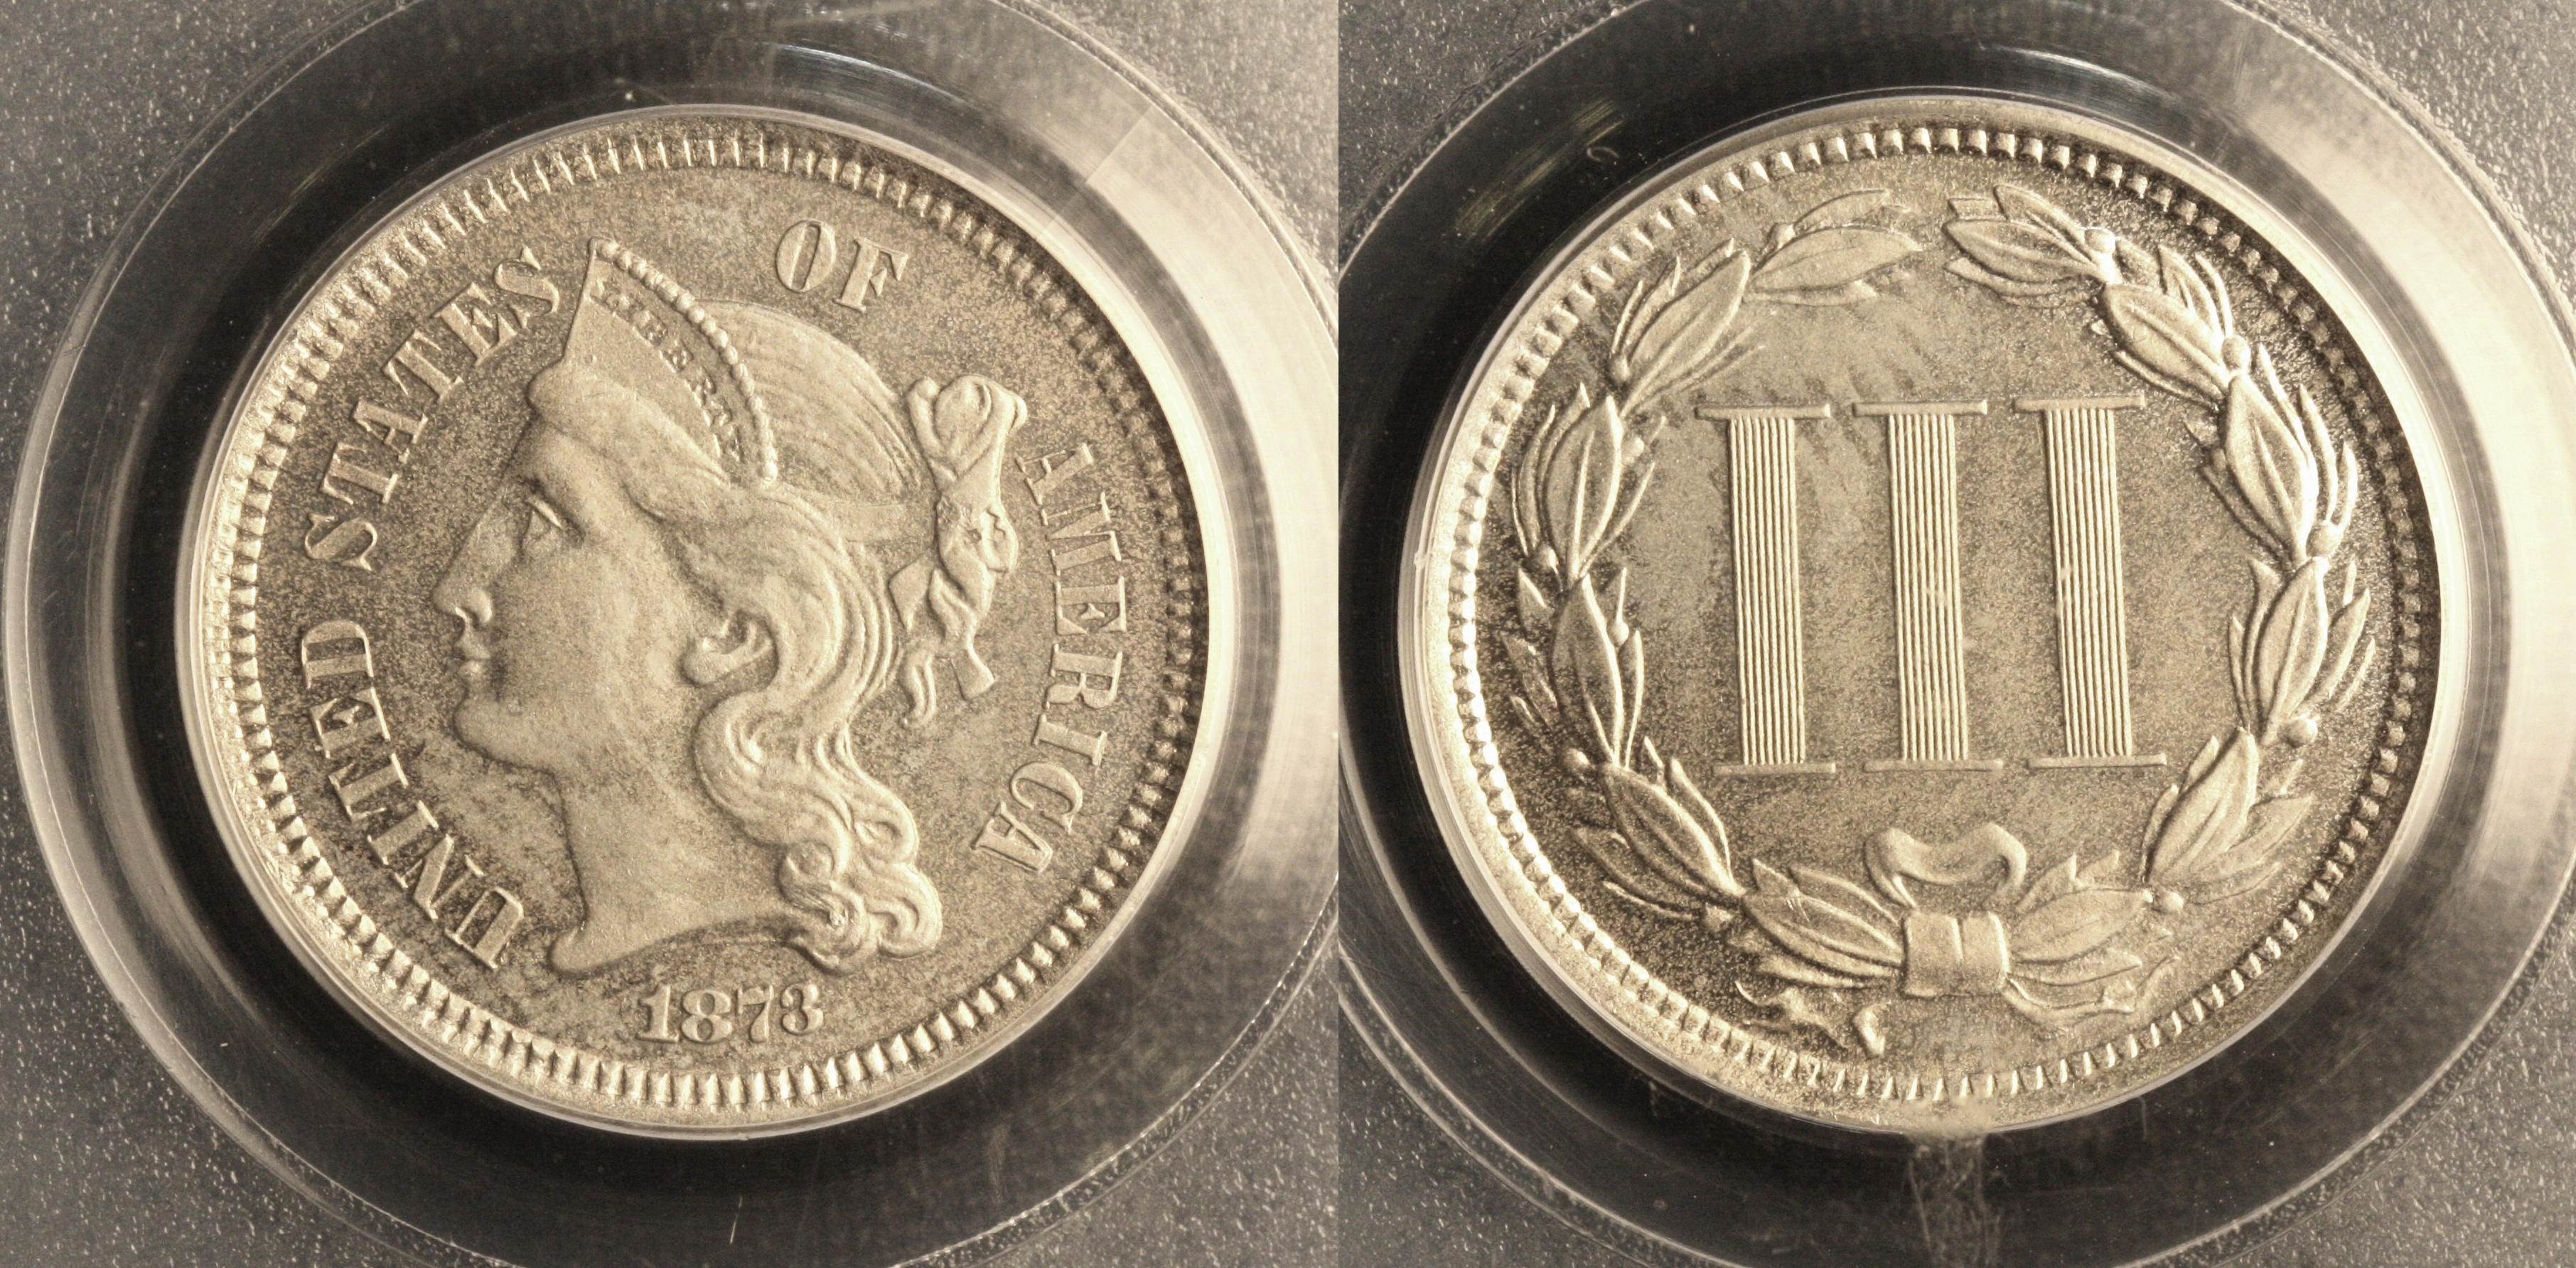 1873 Three Cent Nickel PCGS Proof-64 camera